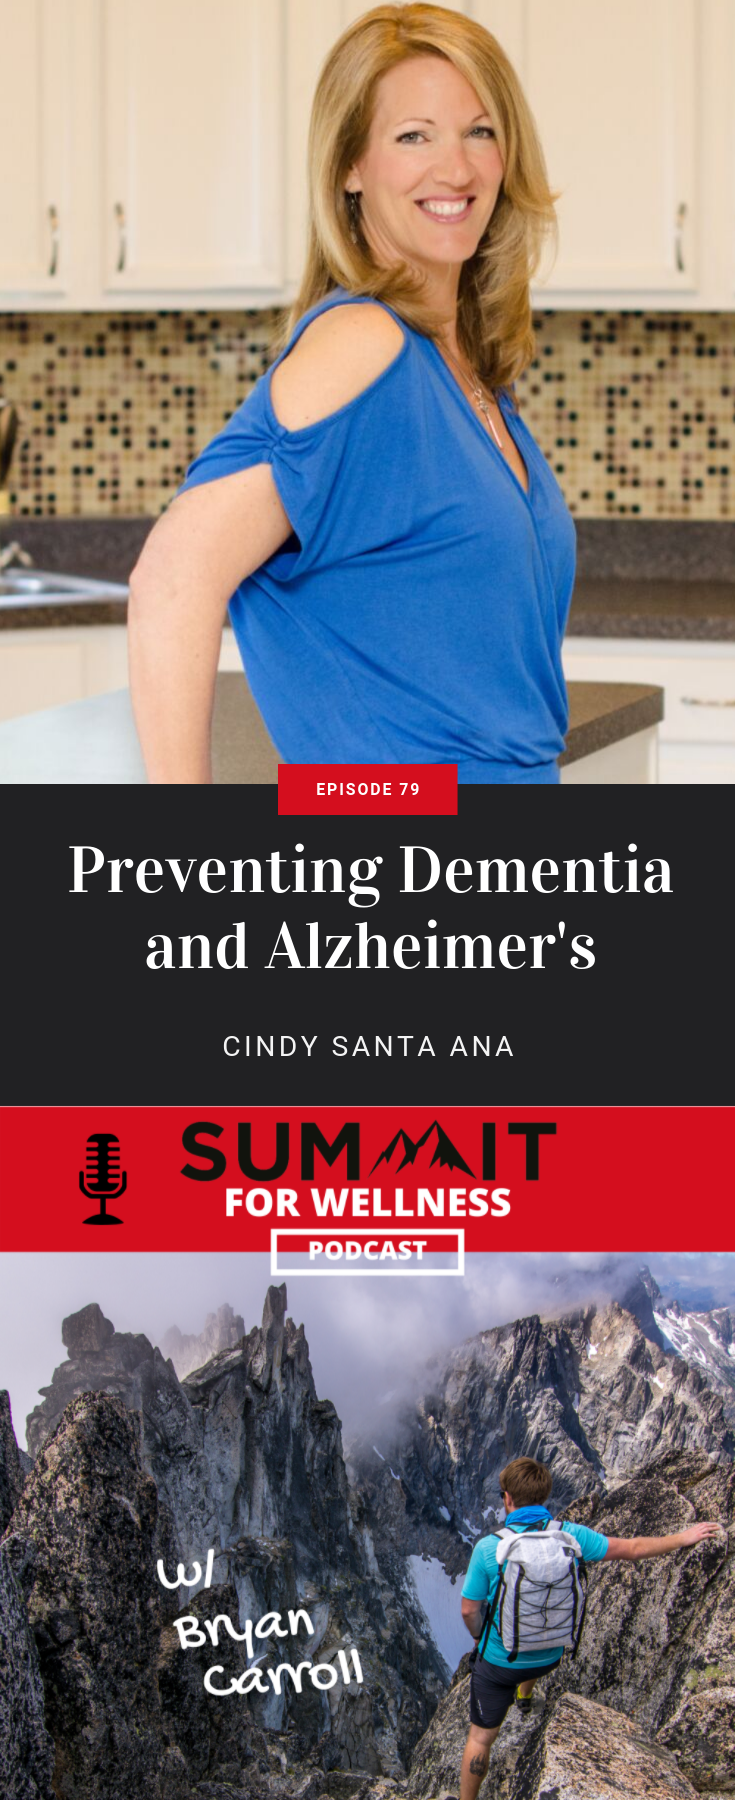 Cindy Santa Ana of the Amen Clinic chats with us about the integrative approach for Dementia and Alzheimer's they use at the clinic.